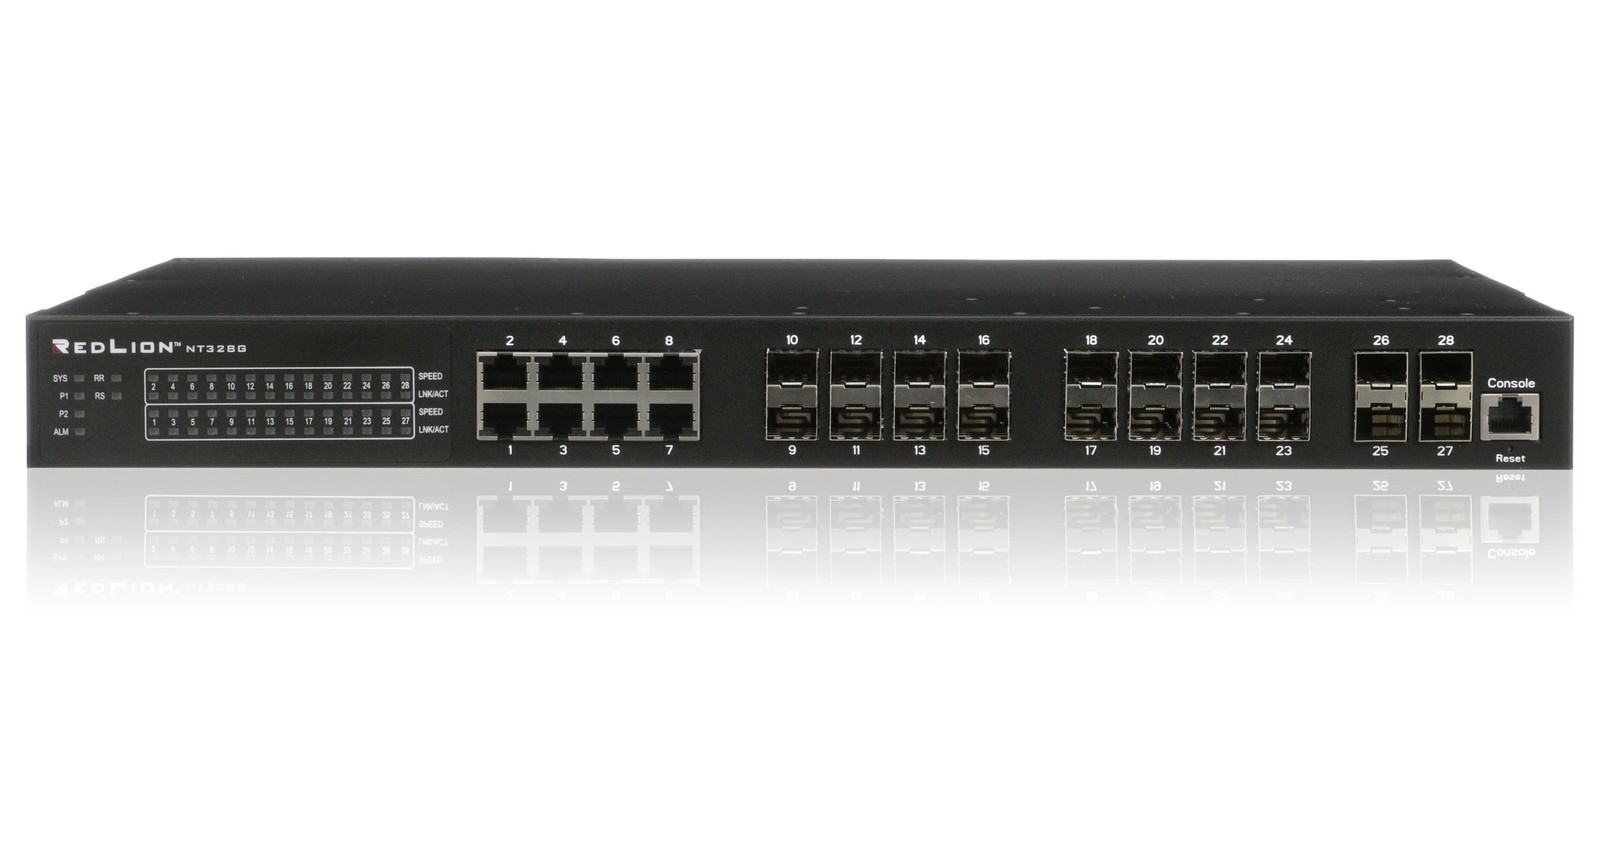 Red Lion stellt den neuen Layer 3-Gigabit-Ethernet-Switch vor.